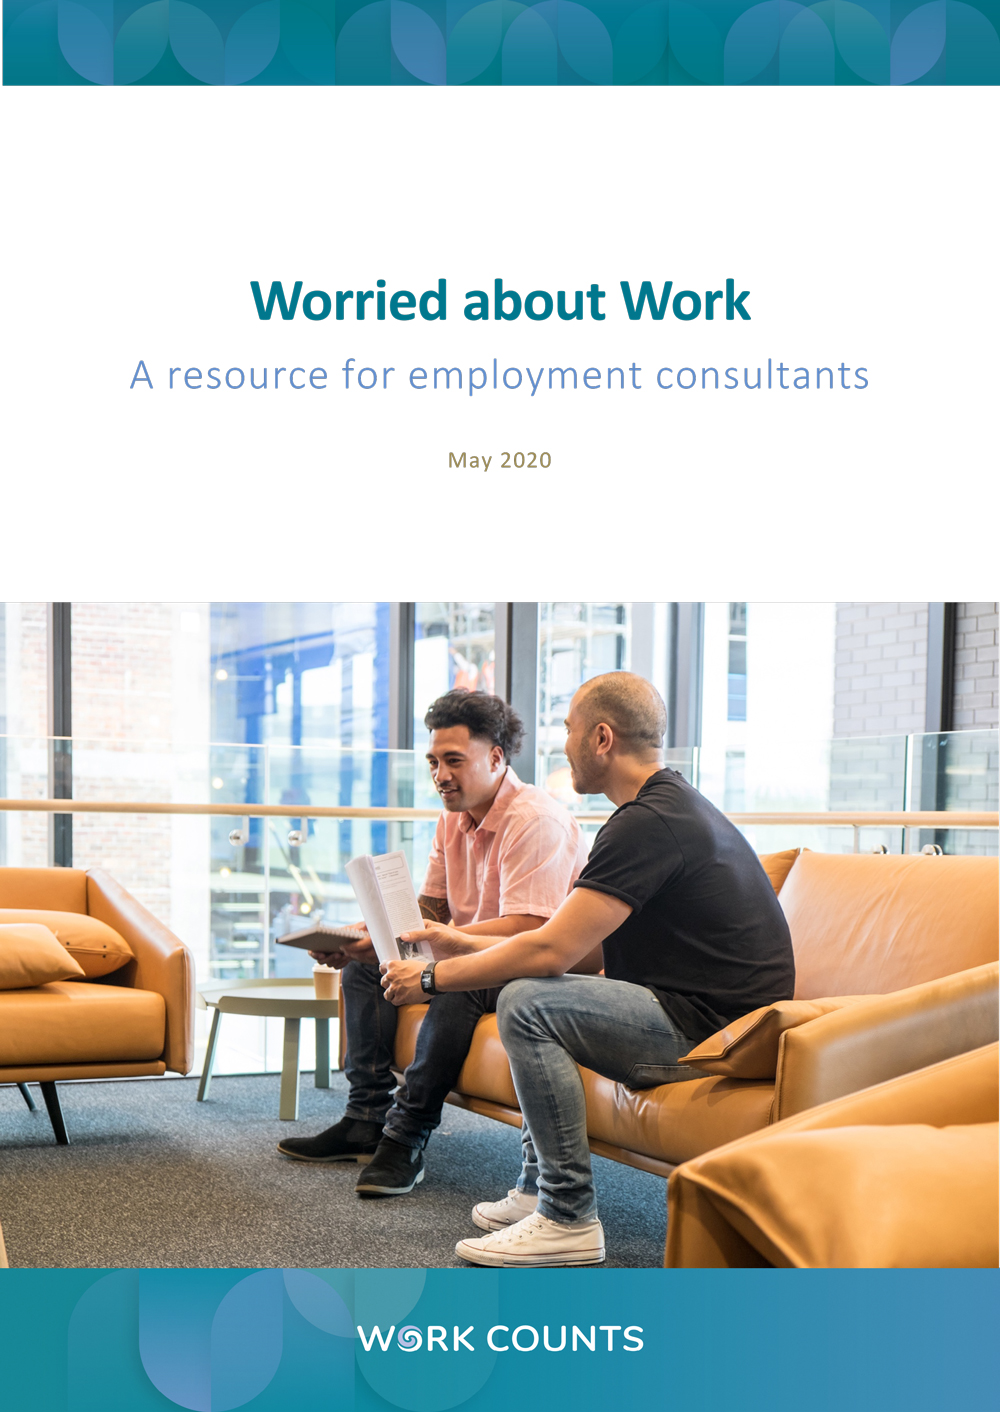 Worried about Work – A resource for employment consultants